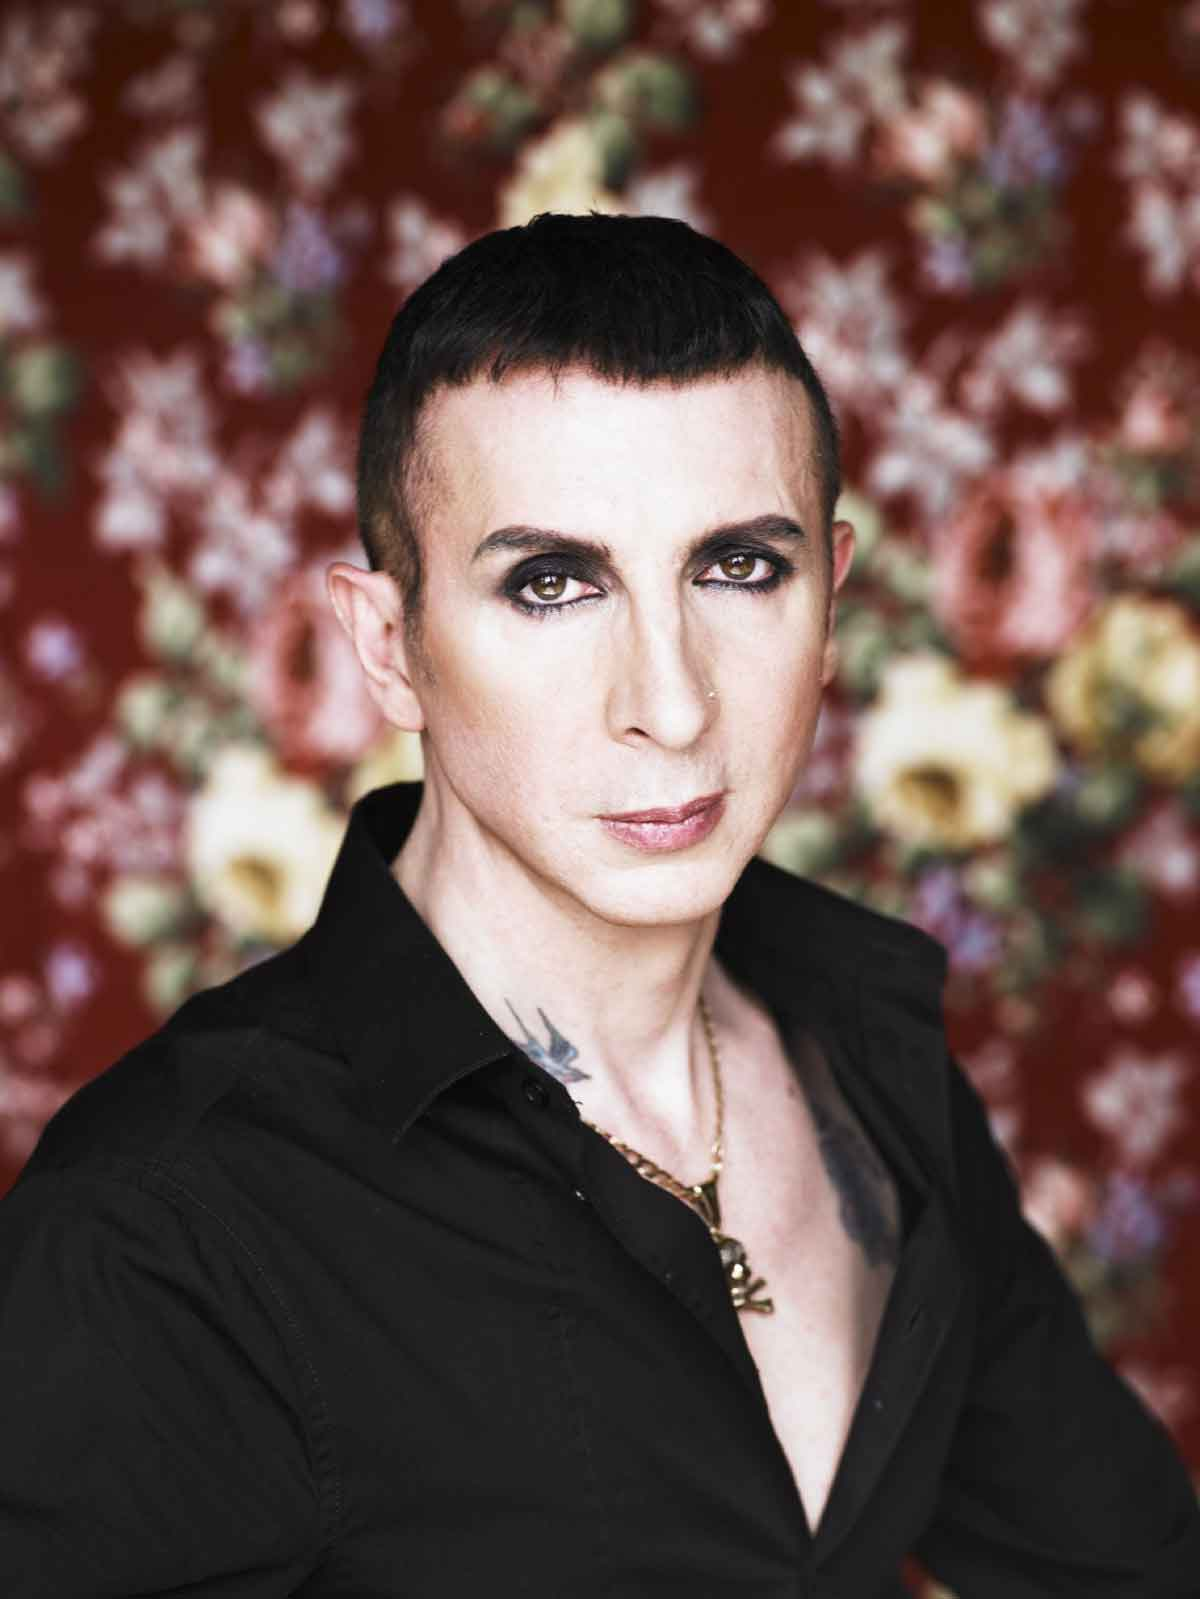 Marc Almond's quote #6